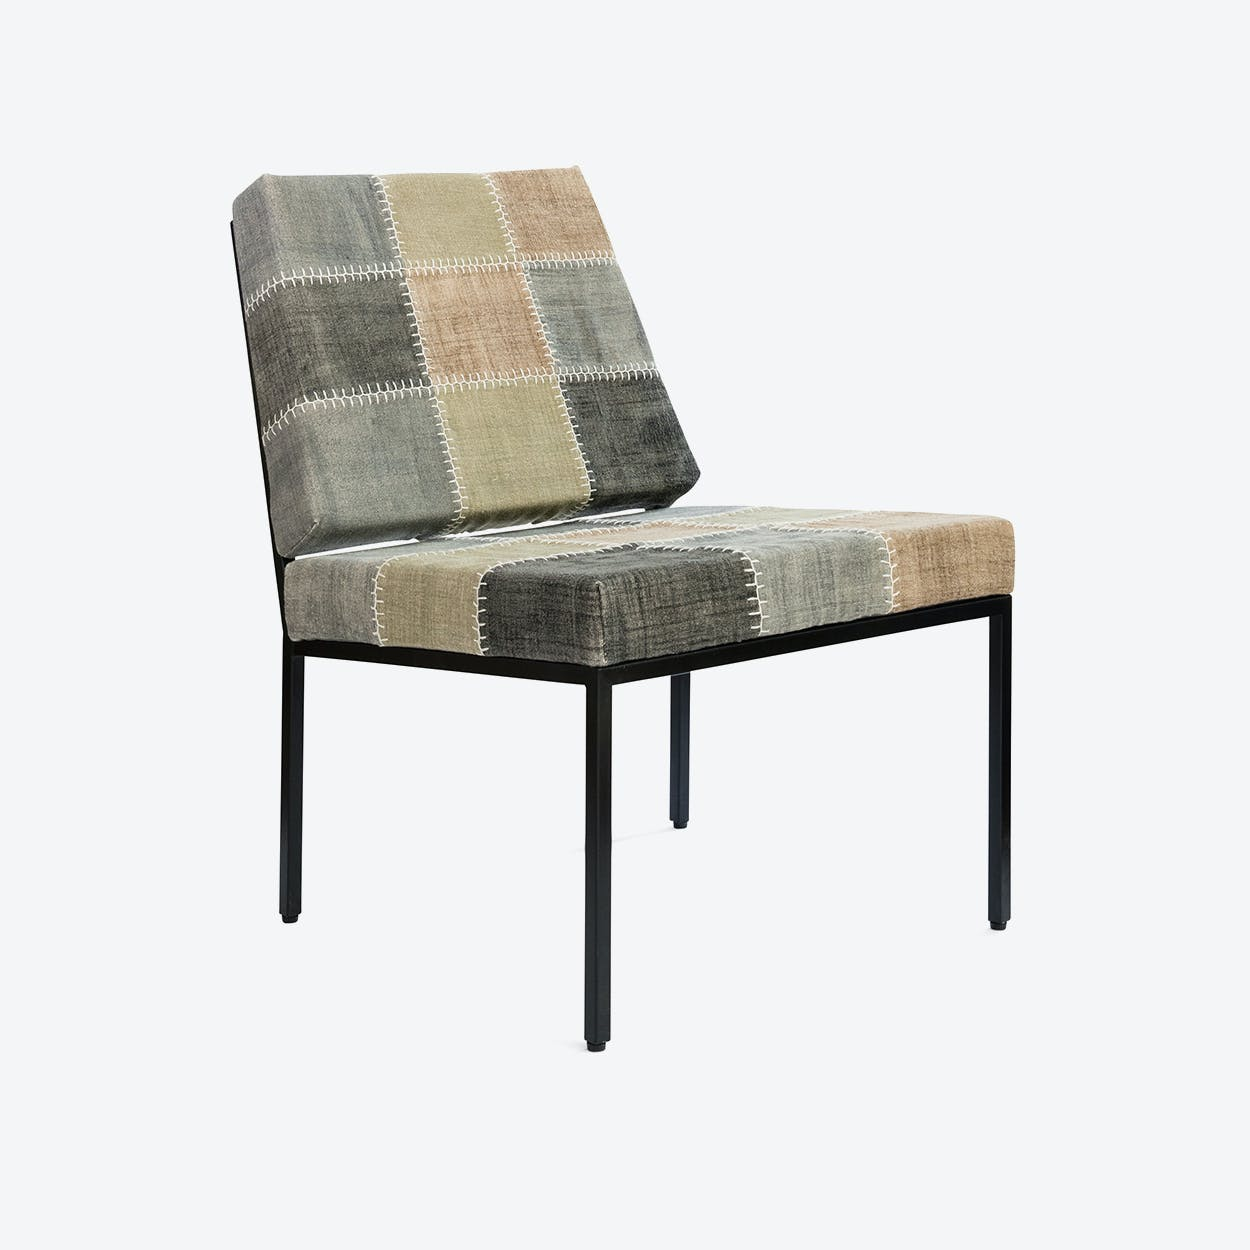 Cheyenne Multi-Color Stone-Wash Chair